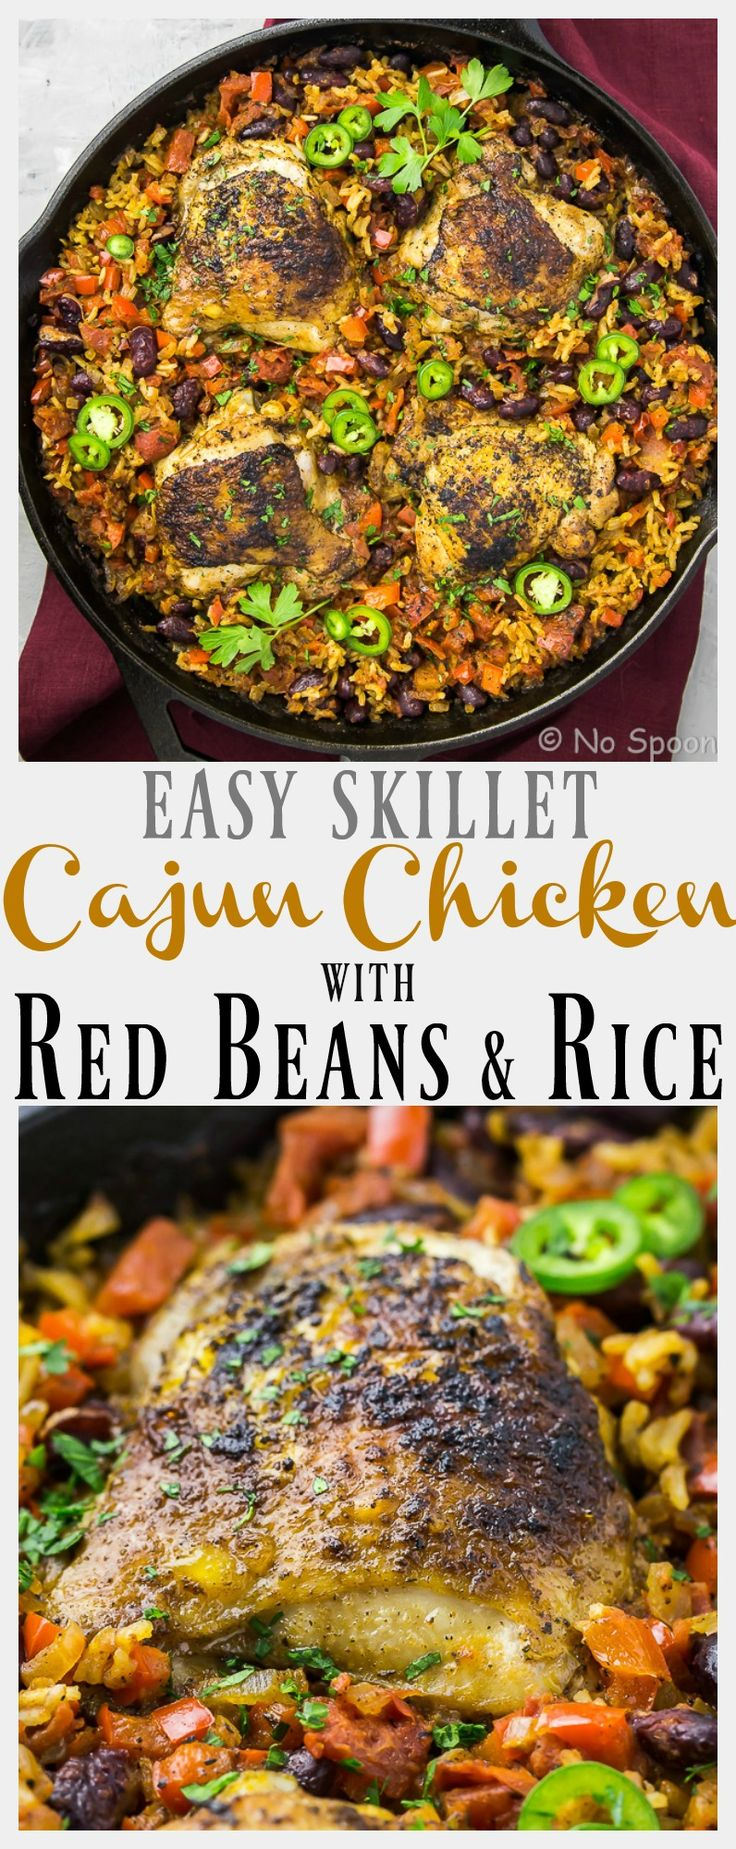 Skillet Cajun Chicken with Red Beans & Rice - fast and flavorful, this dish is made in ONE skillet with only 8 ingredients!